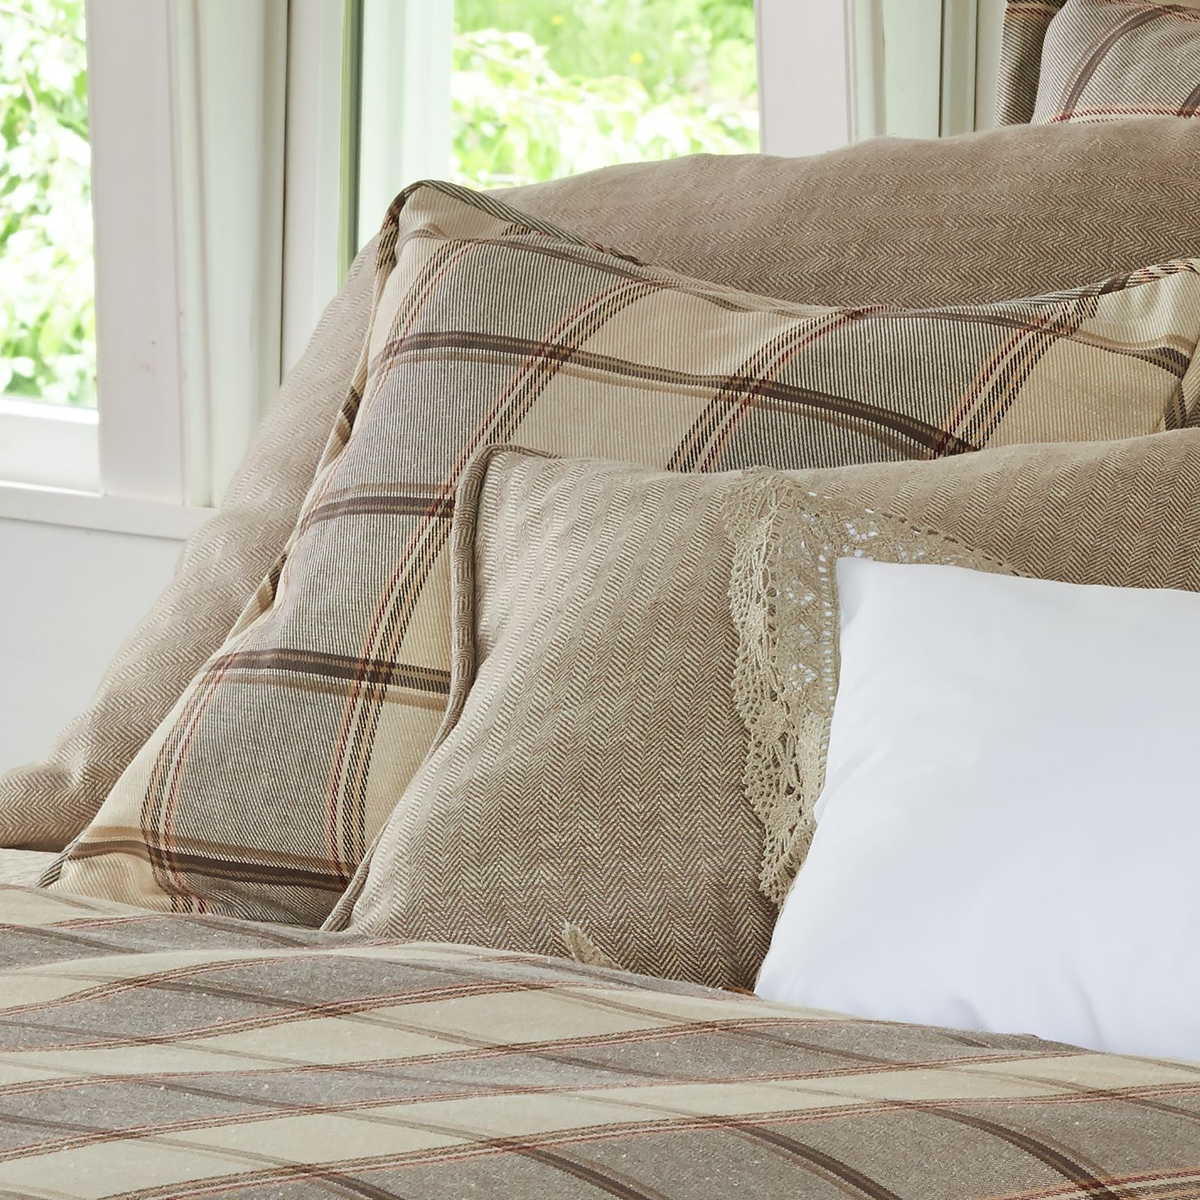 Traditions Linens Bedding Tait Collection